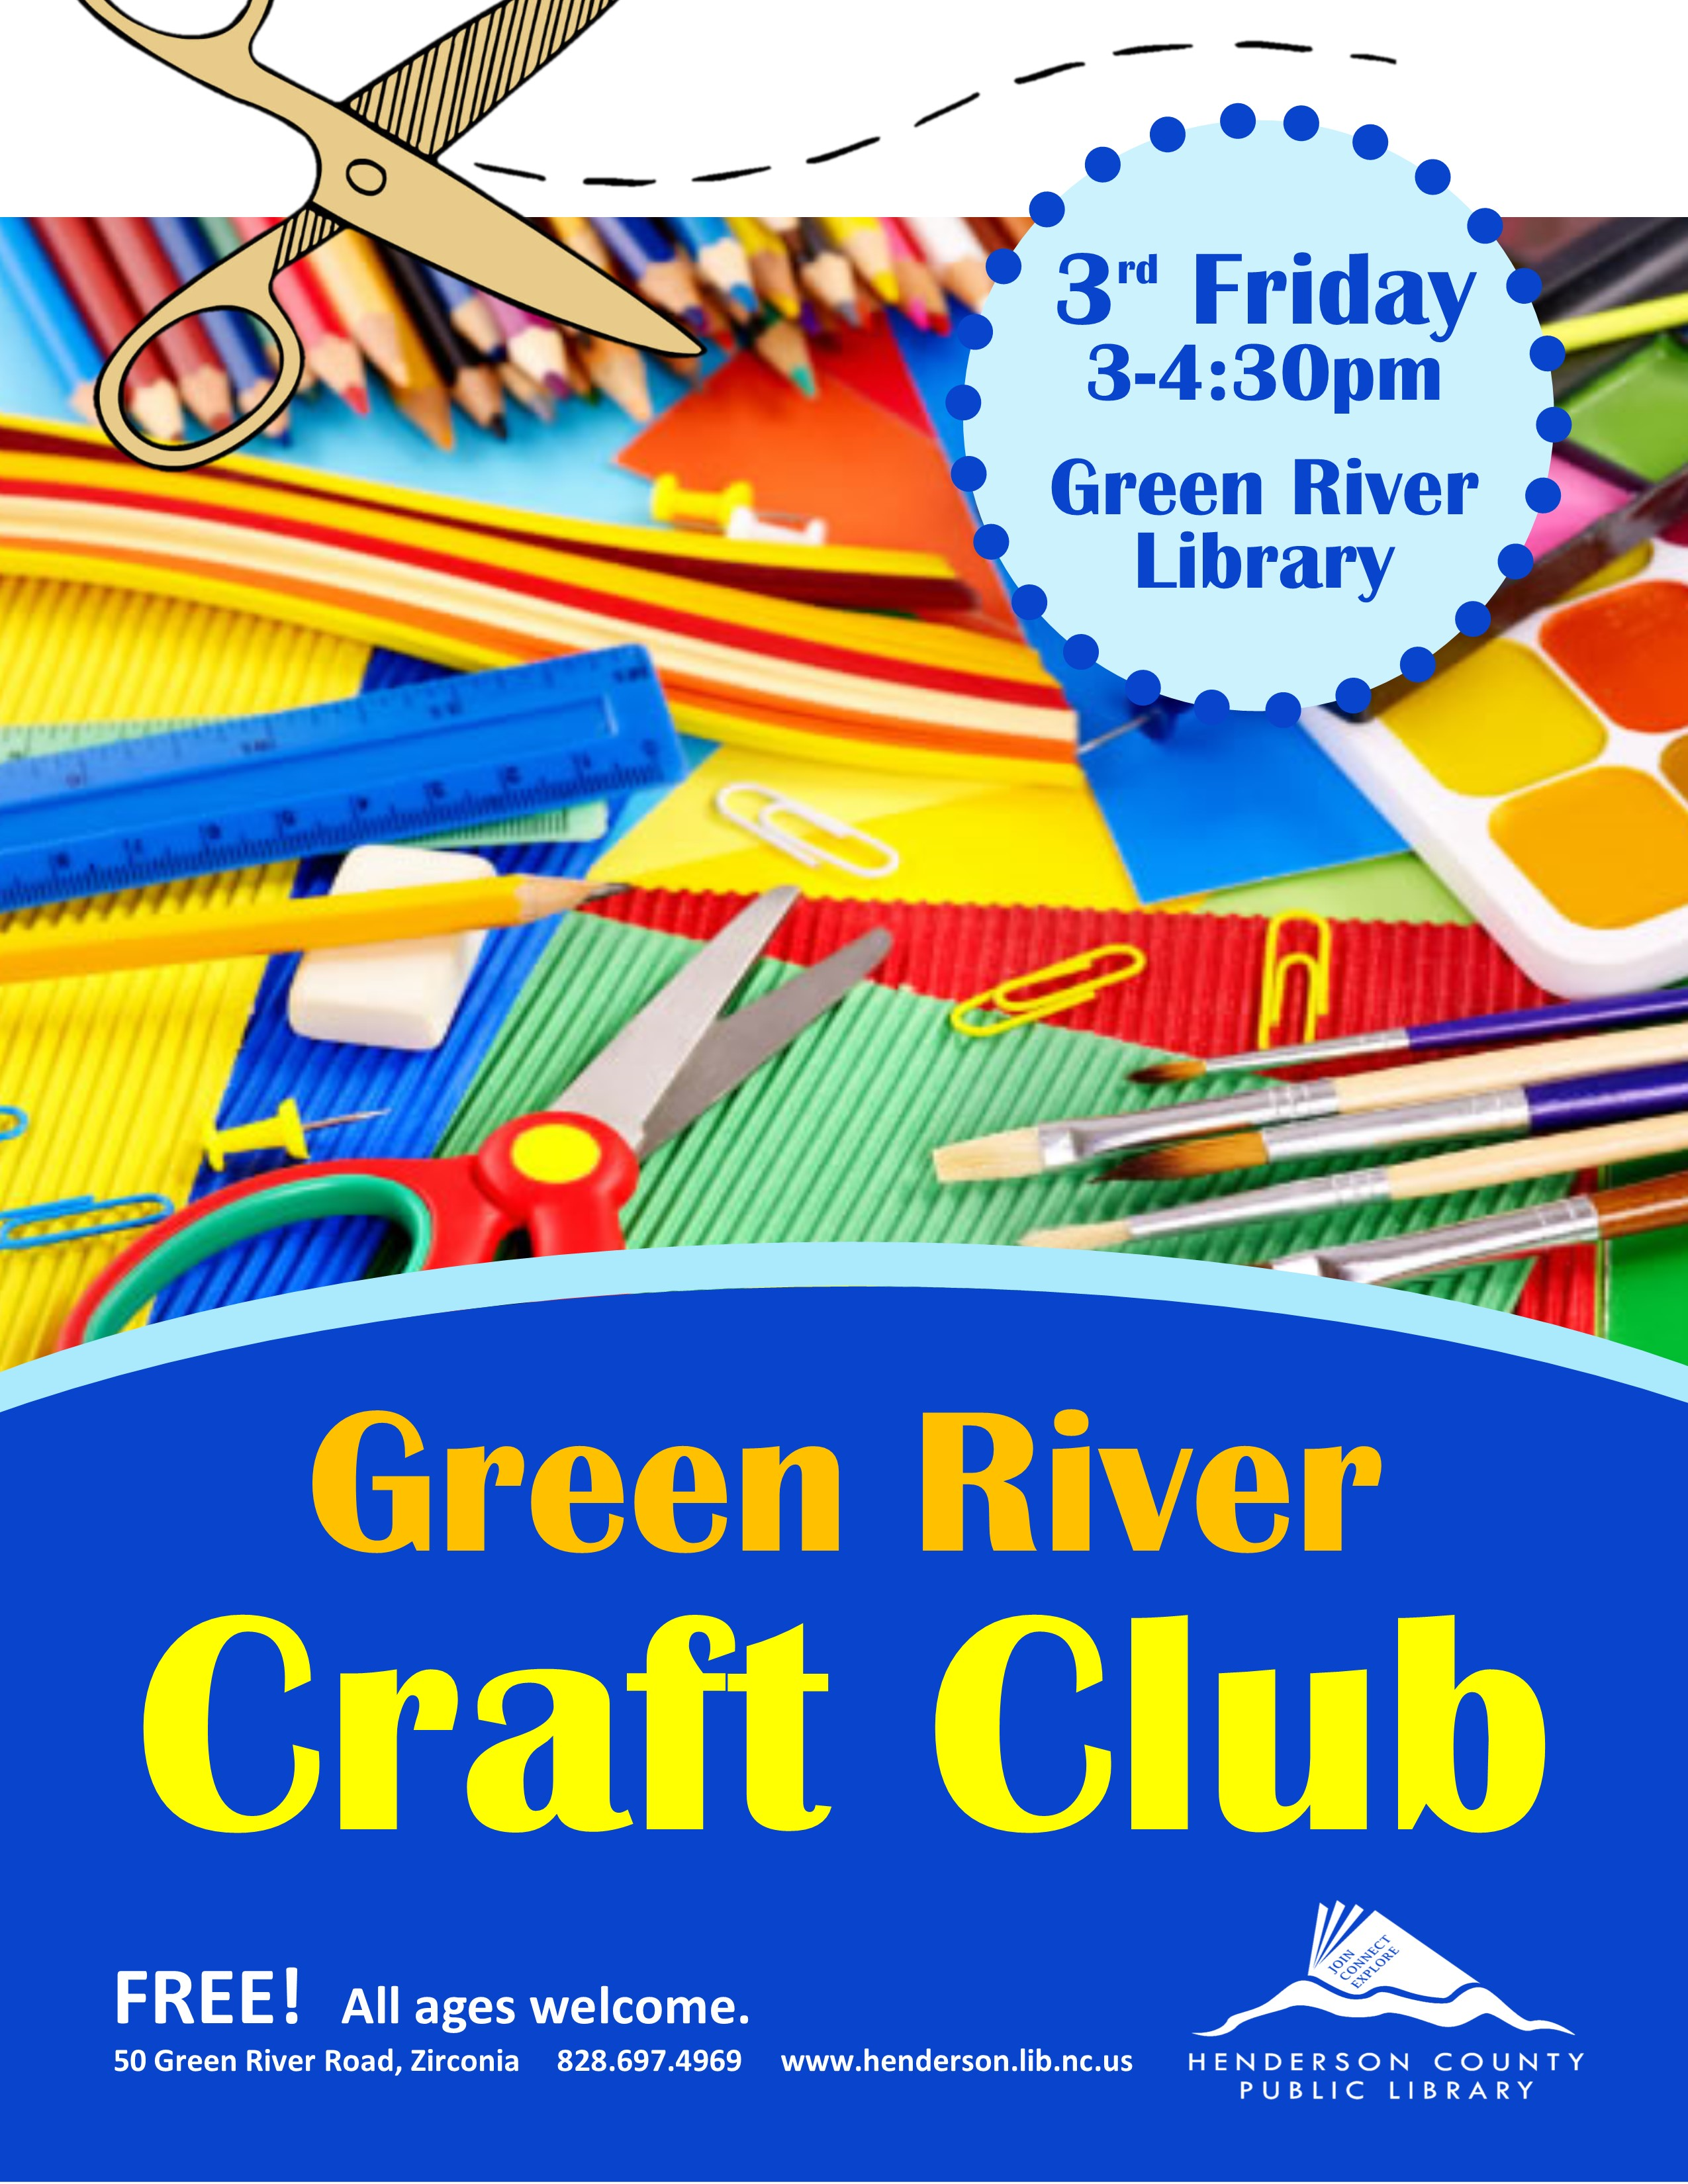 Craft Club @ Green River!